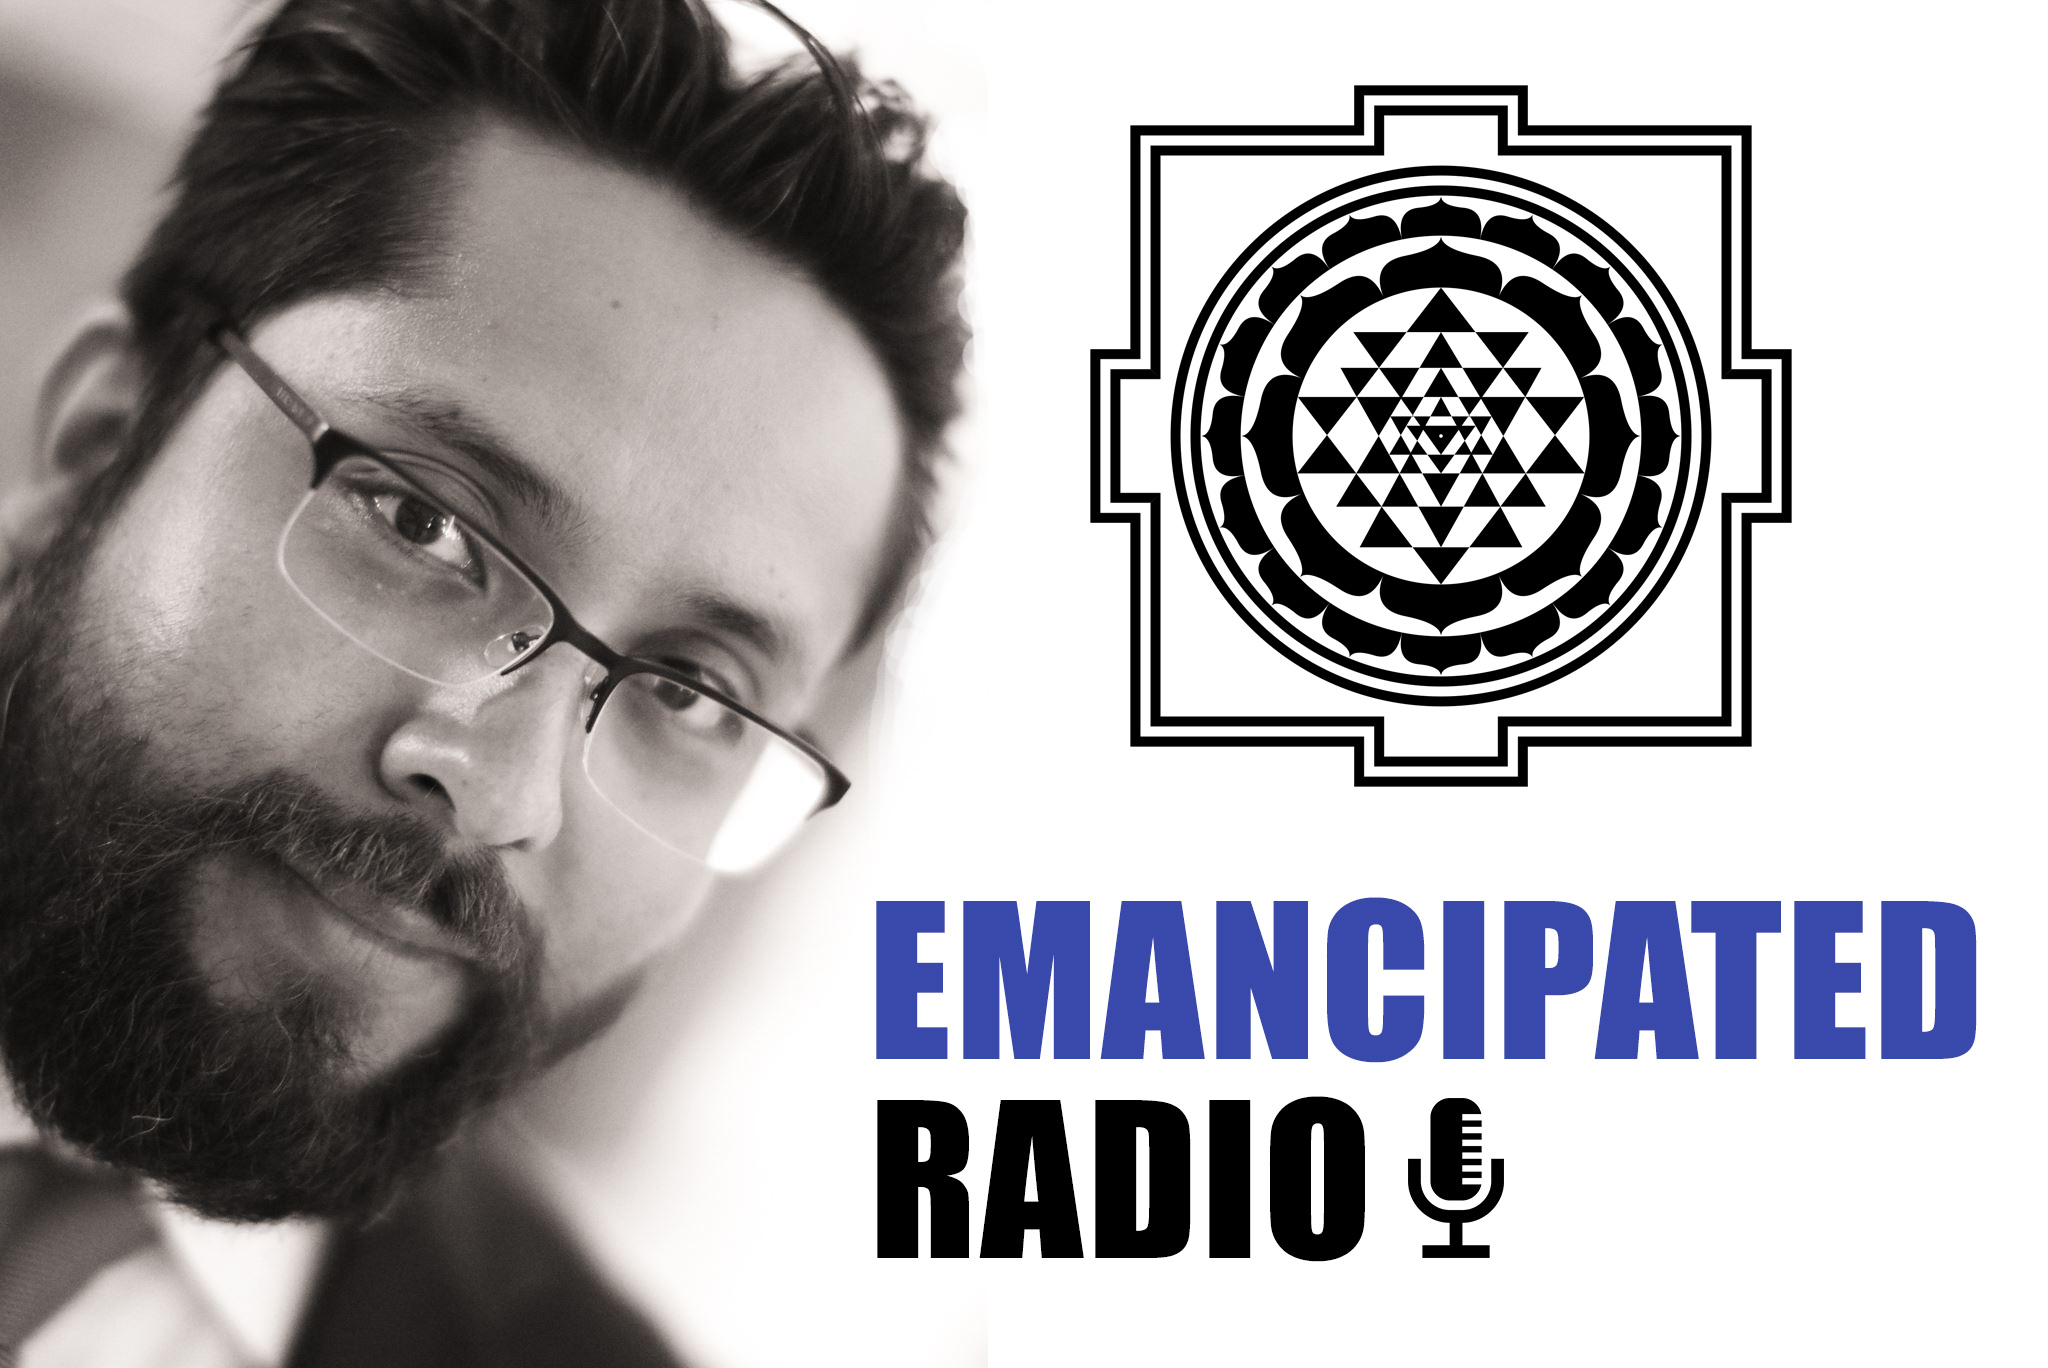 Emancipated Radio